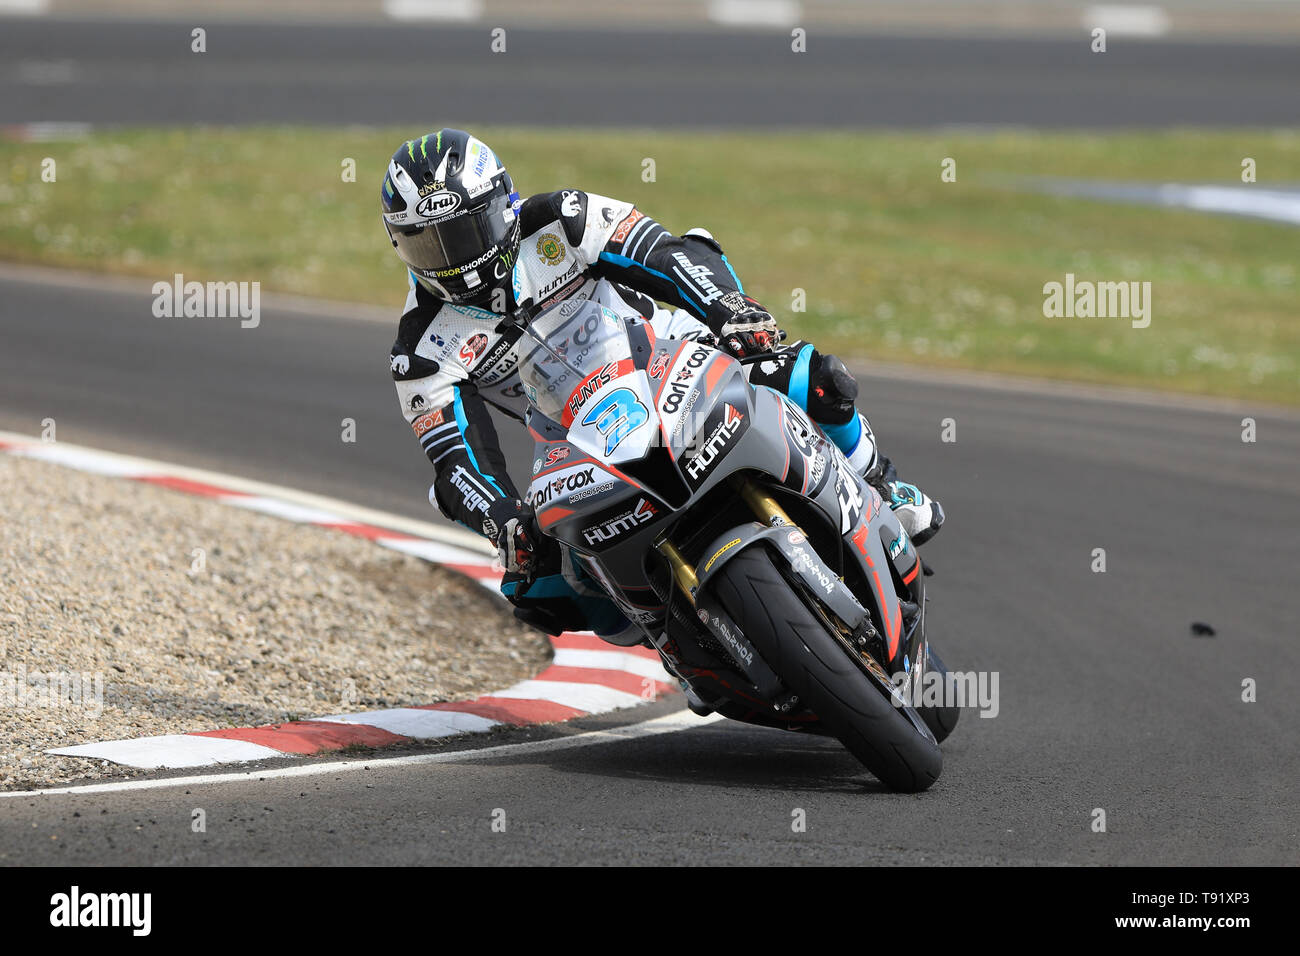 Portrush, Northern Ireland. 16th May, 2019. International North West 200 Motorcycle road racing, Thursday practice and evening racing; Michael Dunlop could only manage 7th on the MD Racing Honda during the SuperSport qualifying session Credit: Action Plus Sports/Alamy Live News - Stock Image